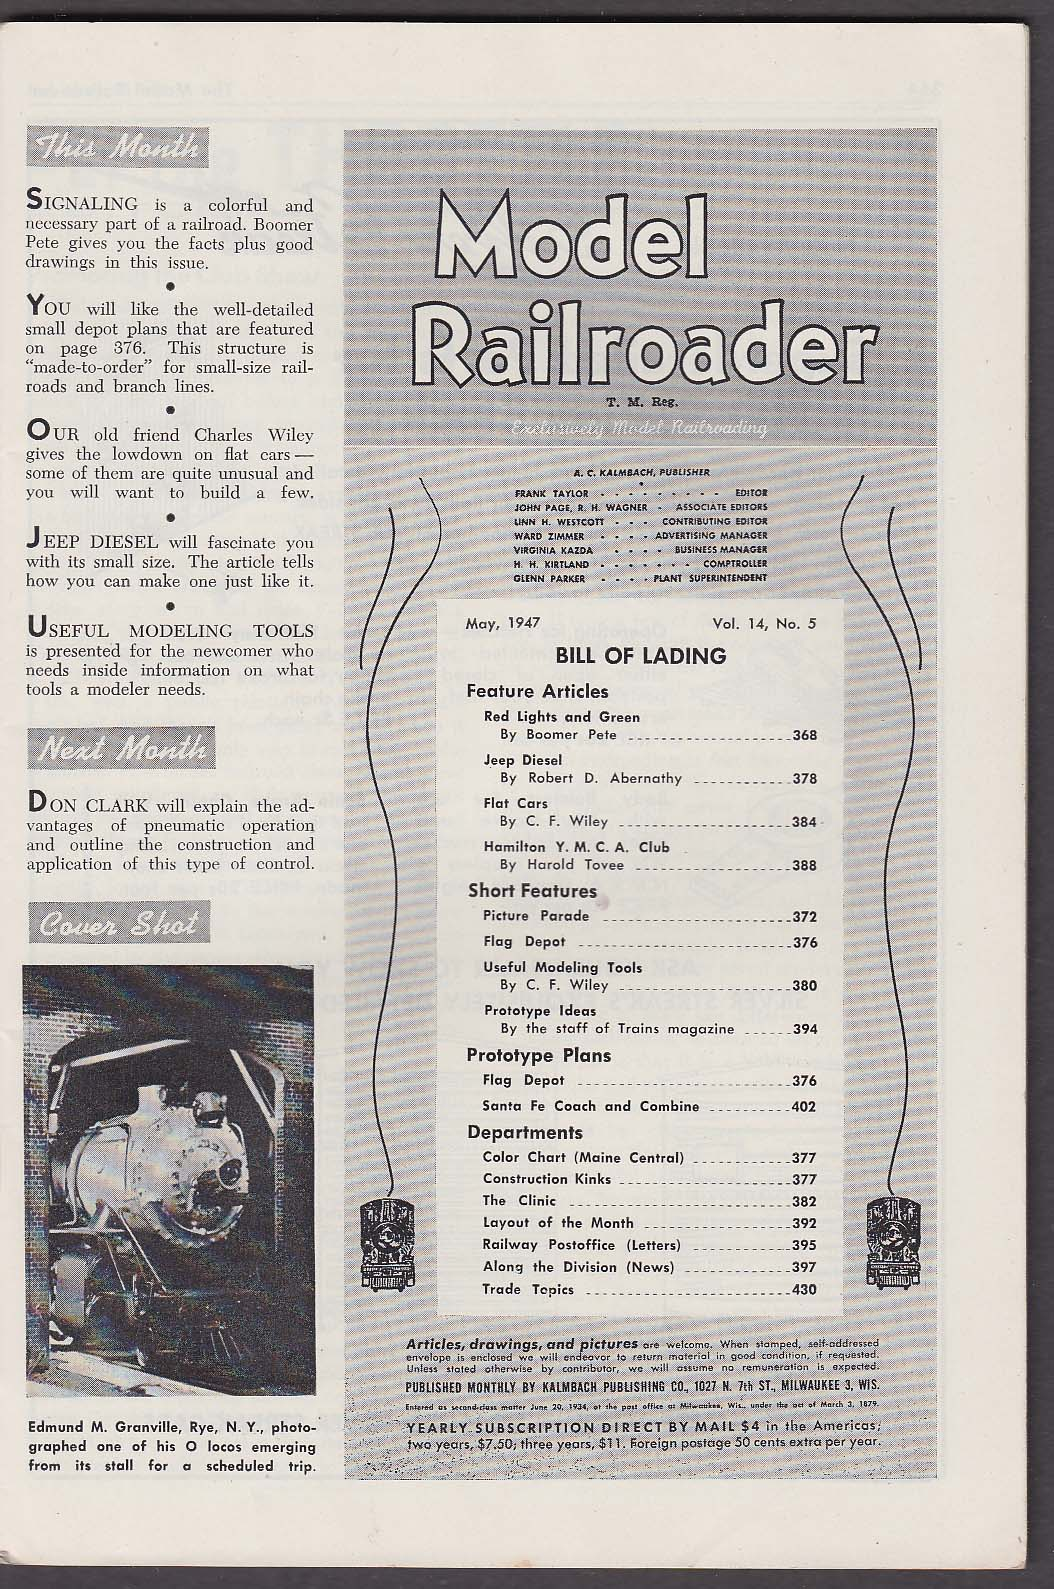 Image for MODEL RAILROADER Jeep Diesel Flat Cars Hamilton YMCA Club + 5 1947